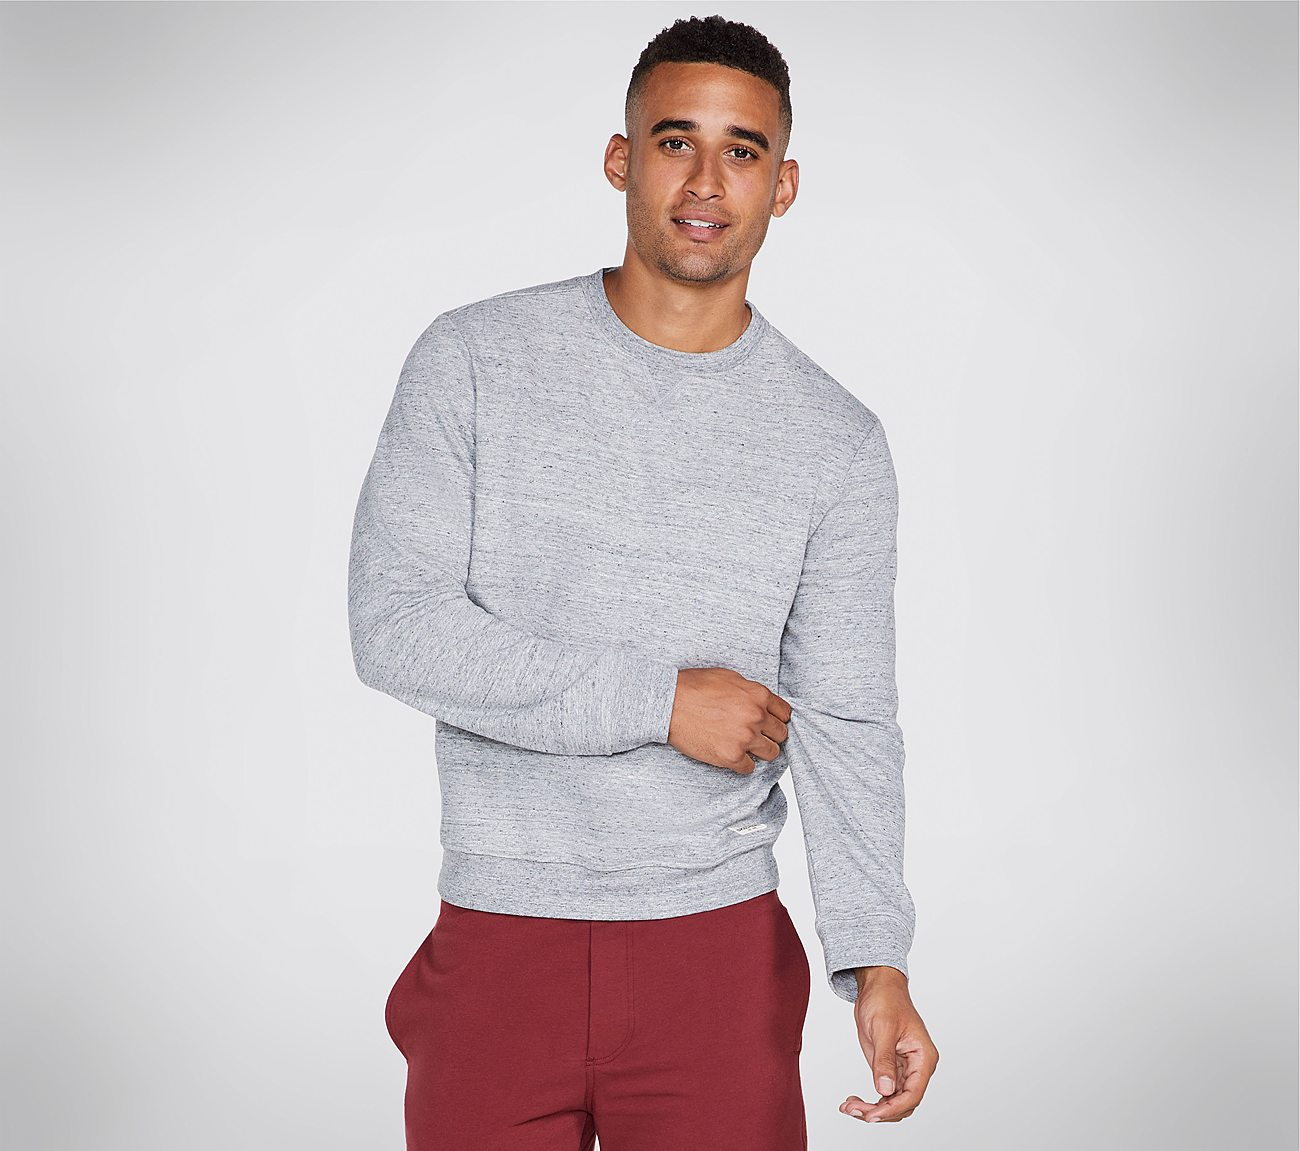 Skechers Apparel Worthy Crewneck Shirt